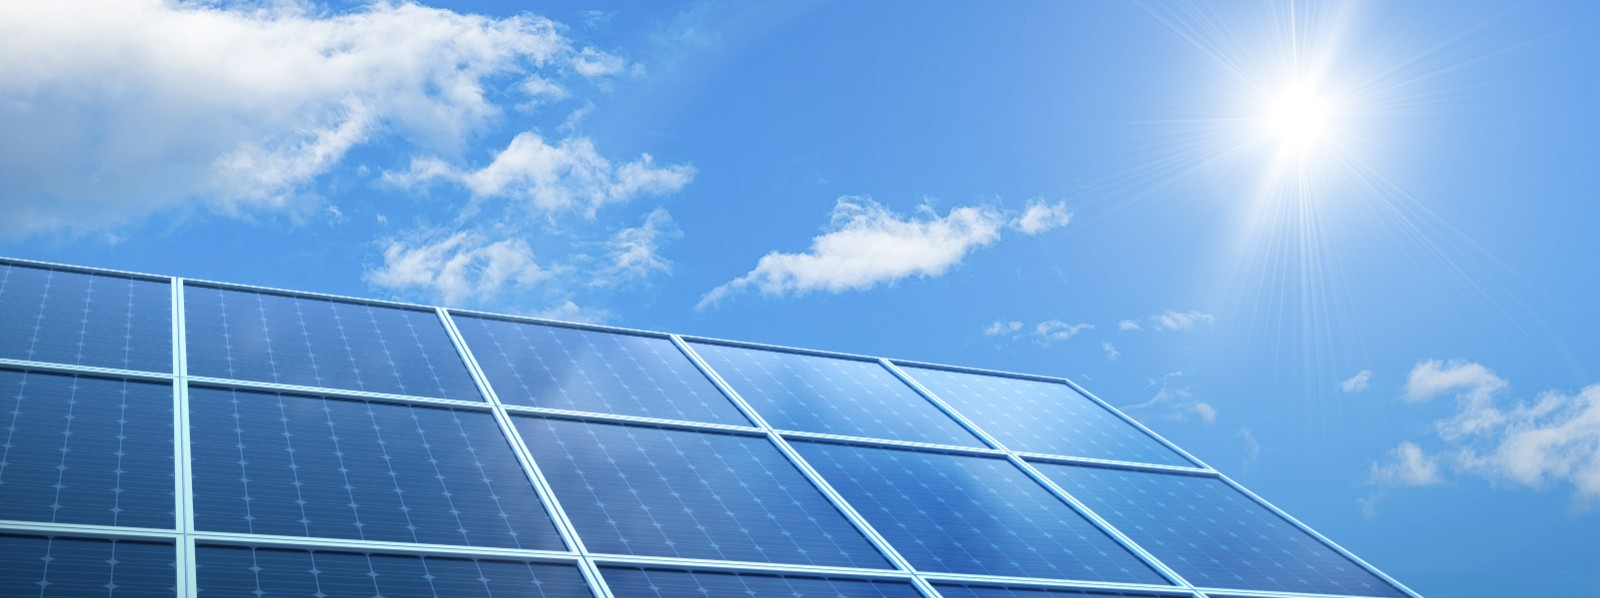 Road Smart-Introduction To Photovoltaic Power Generation